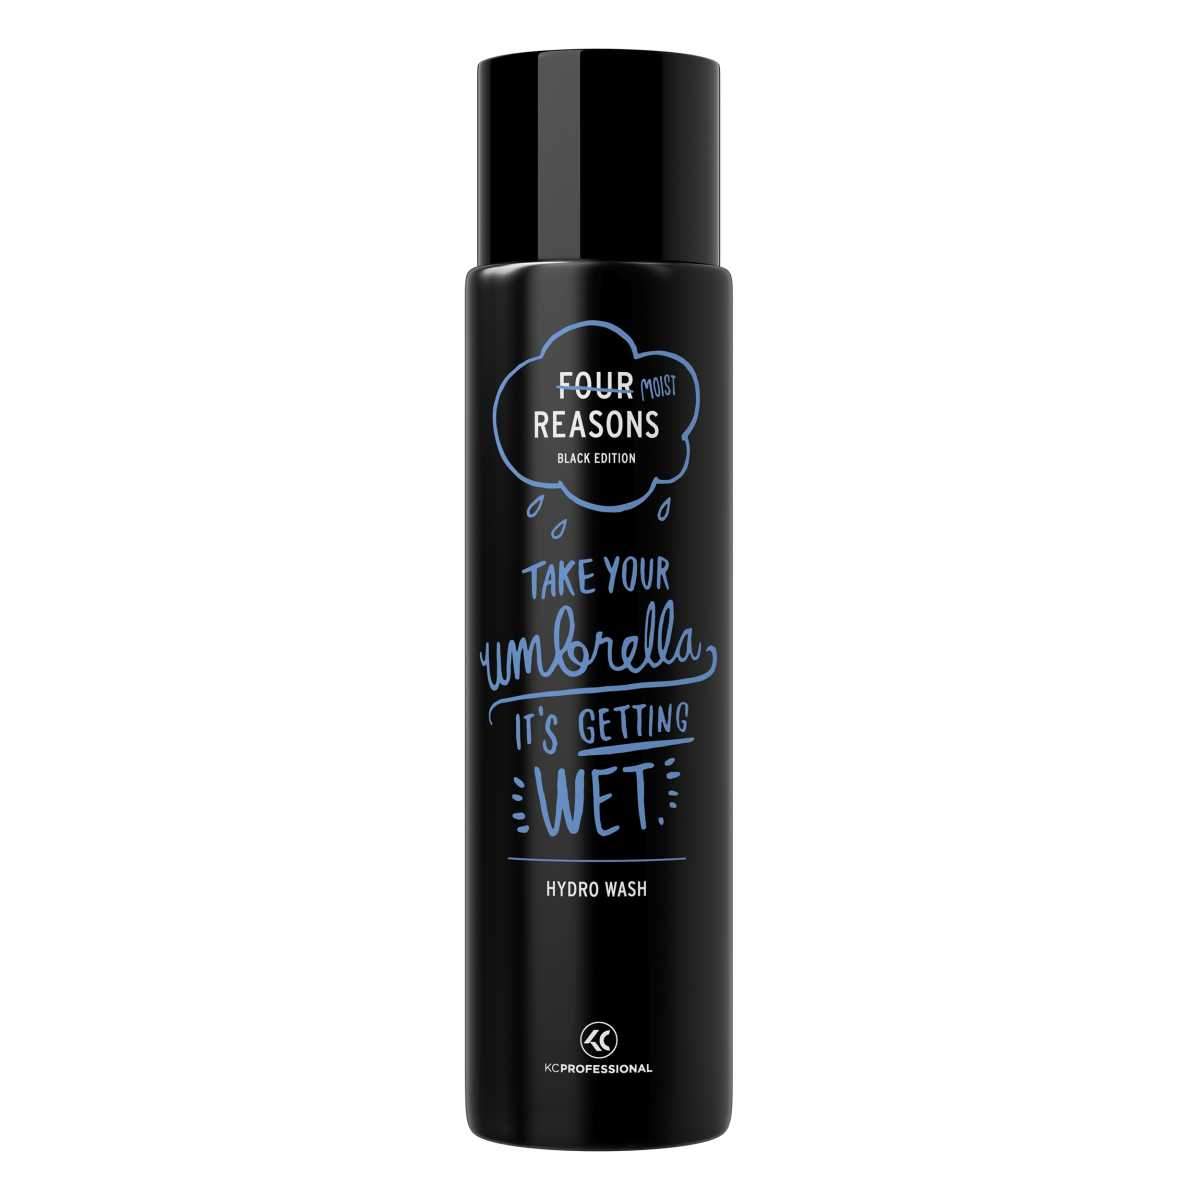 Four-Reasons-Black-Edition-Hydro-Wash